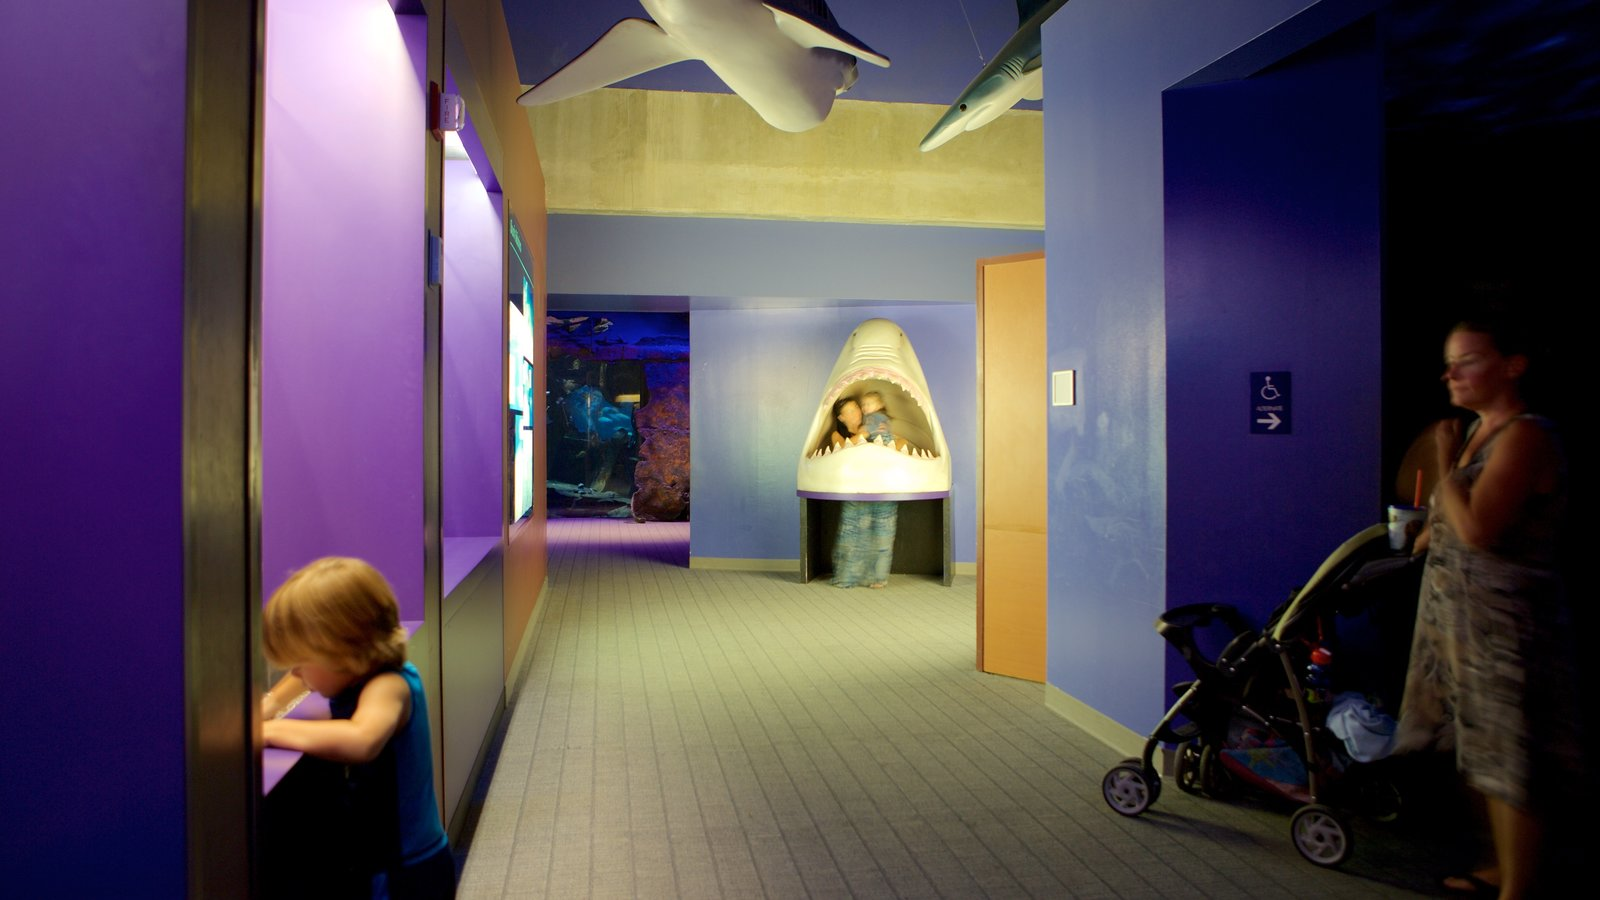 Virginia Aquarium And Marine Science Center Showing Interior Views As Well  As A Family